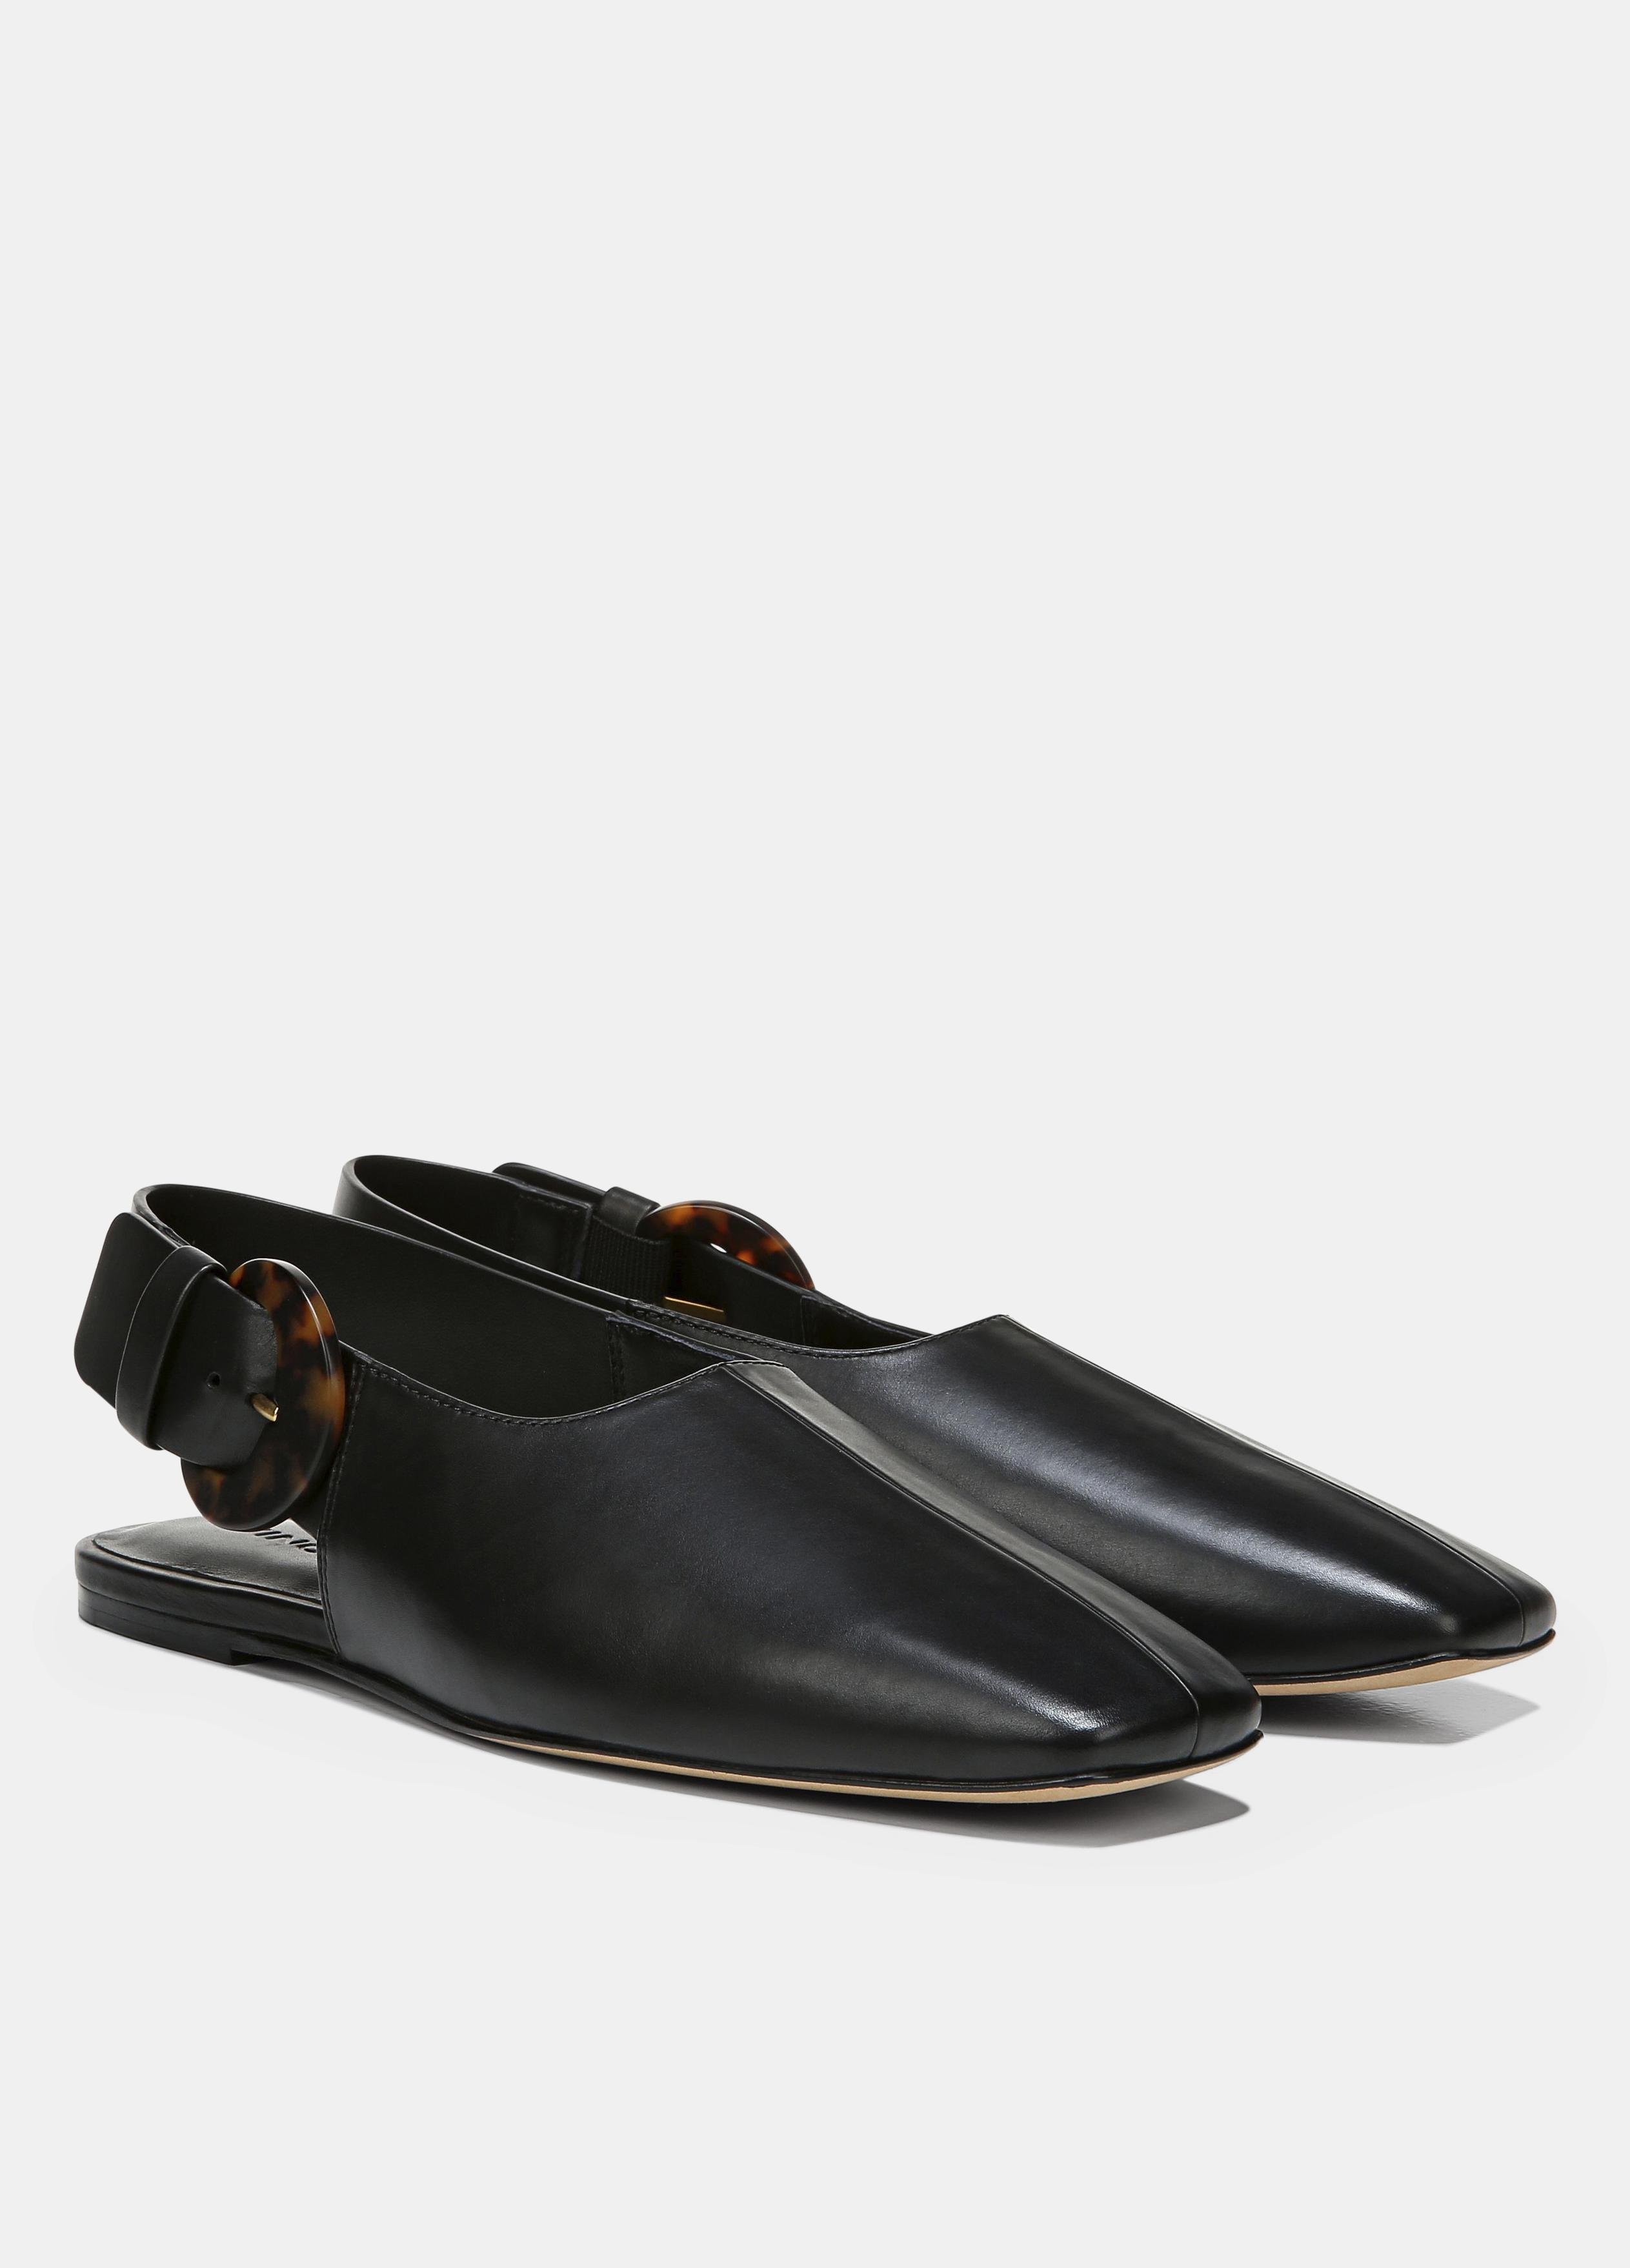 Leather Cadot Buckle Shoe 1